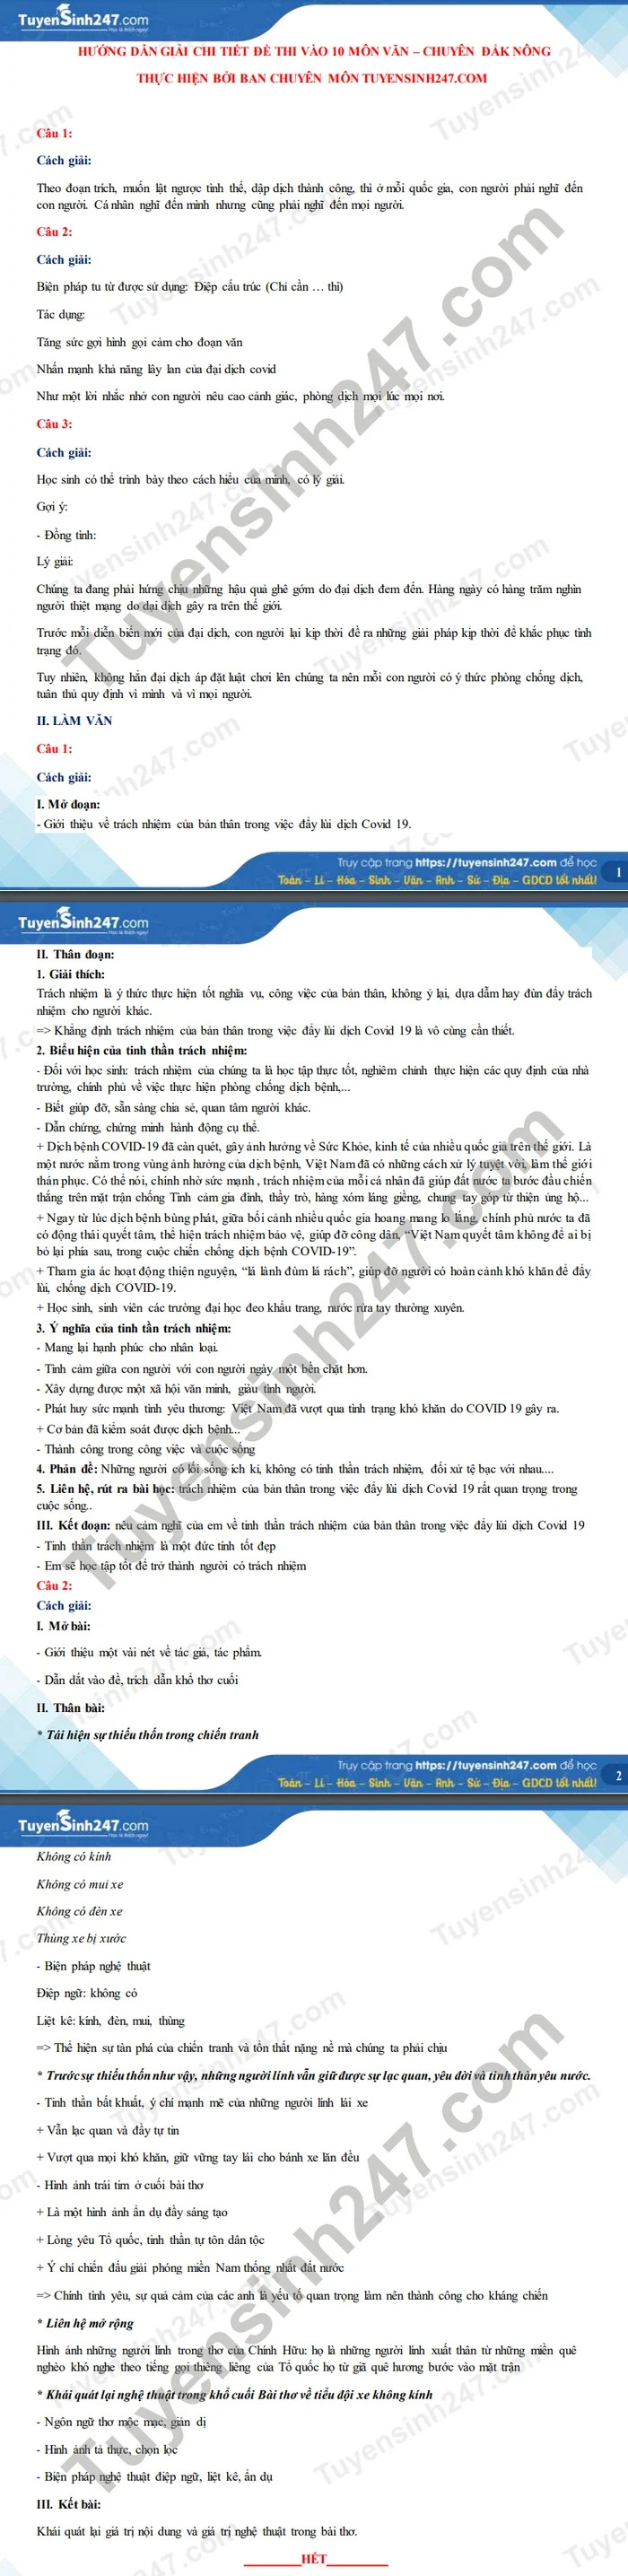 Answers to the exam questions for the 10th grade in Dak Nong province's Literature in 2021 2